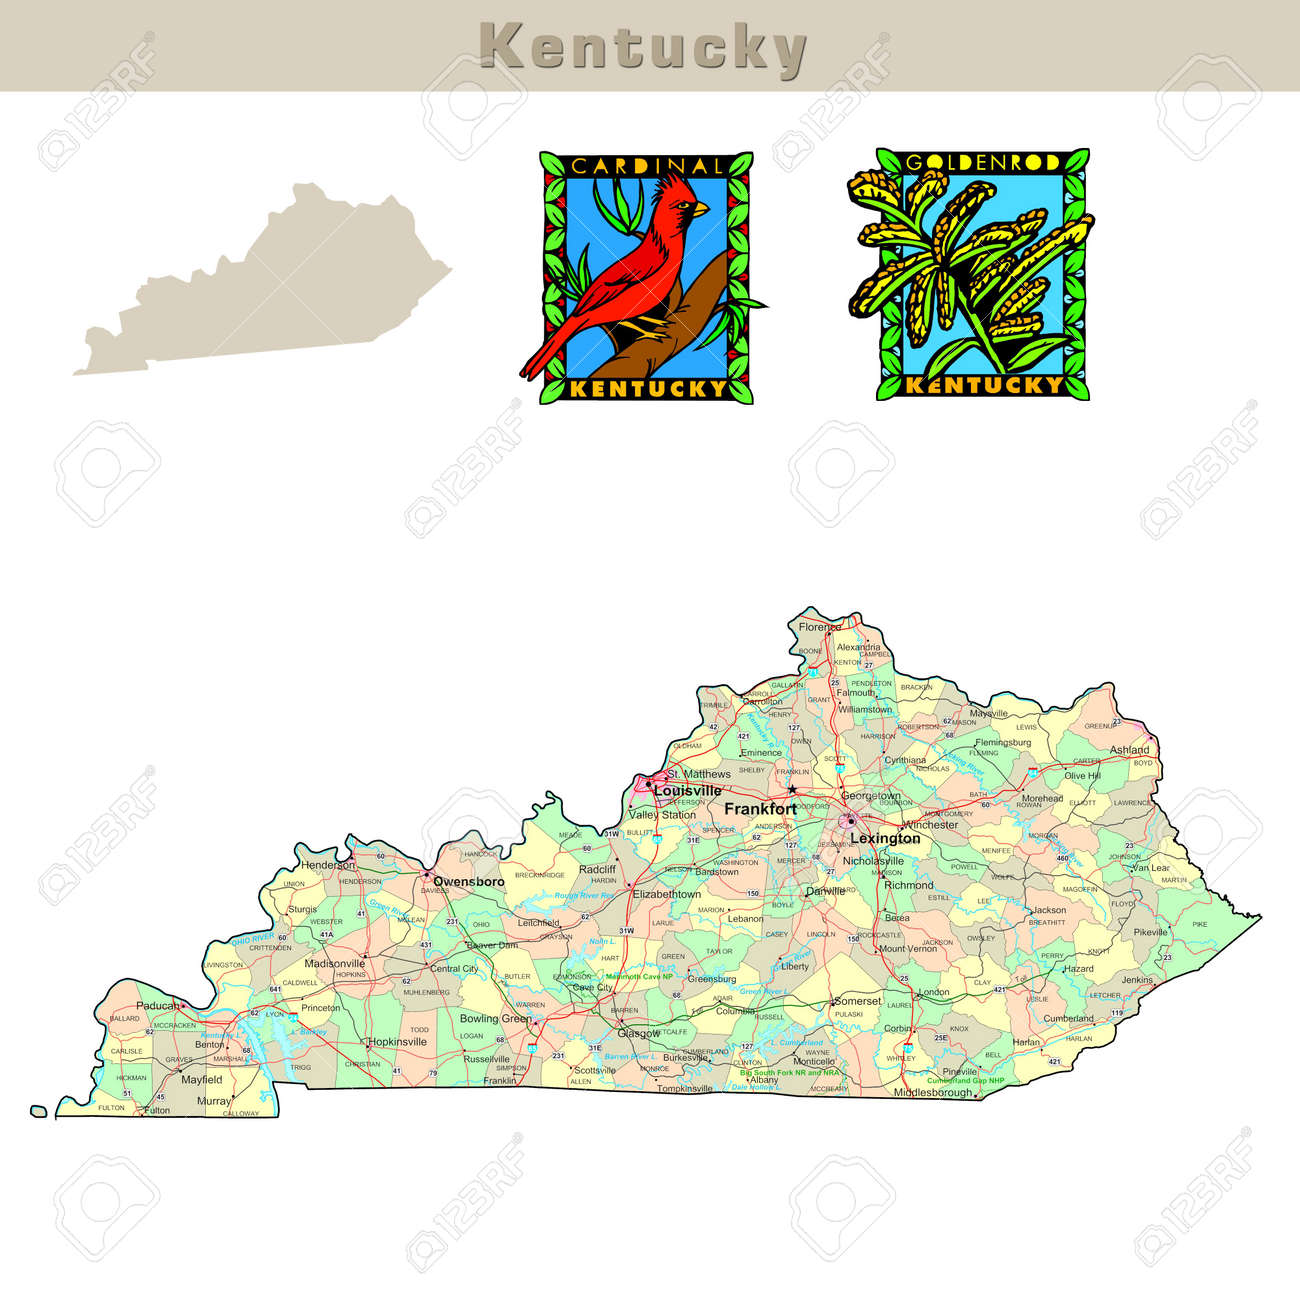 USA states series: Kentucky. Political map with counties, roads,.. on kentucky state legislative map, kentucky state map detailed, tennessee virginia and north carolina map, kentucky state road map, kentucky physical map, kentucky state travel map, kentucky state home, pittsburgh political map, kentucky state climate, memphis political map, kentucky state symbols, kentucky state resource map, kentucky state city map, kentucky state outline map, kentucky state map key, kentucky state outline printables, missouri political map, kentucky state bird, alabama political map, kentucky state map with cities and rivers,